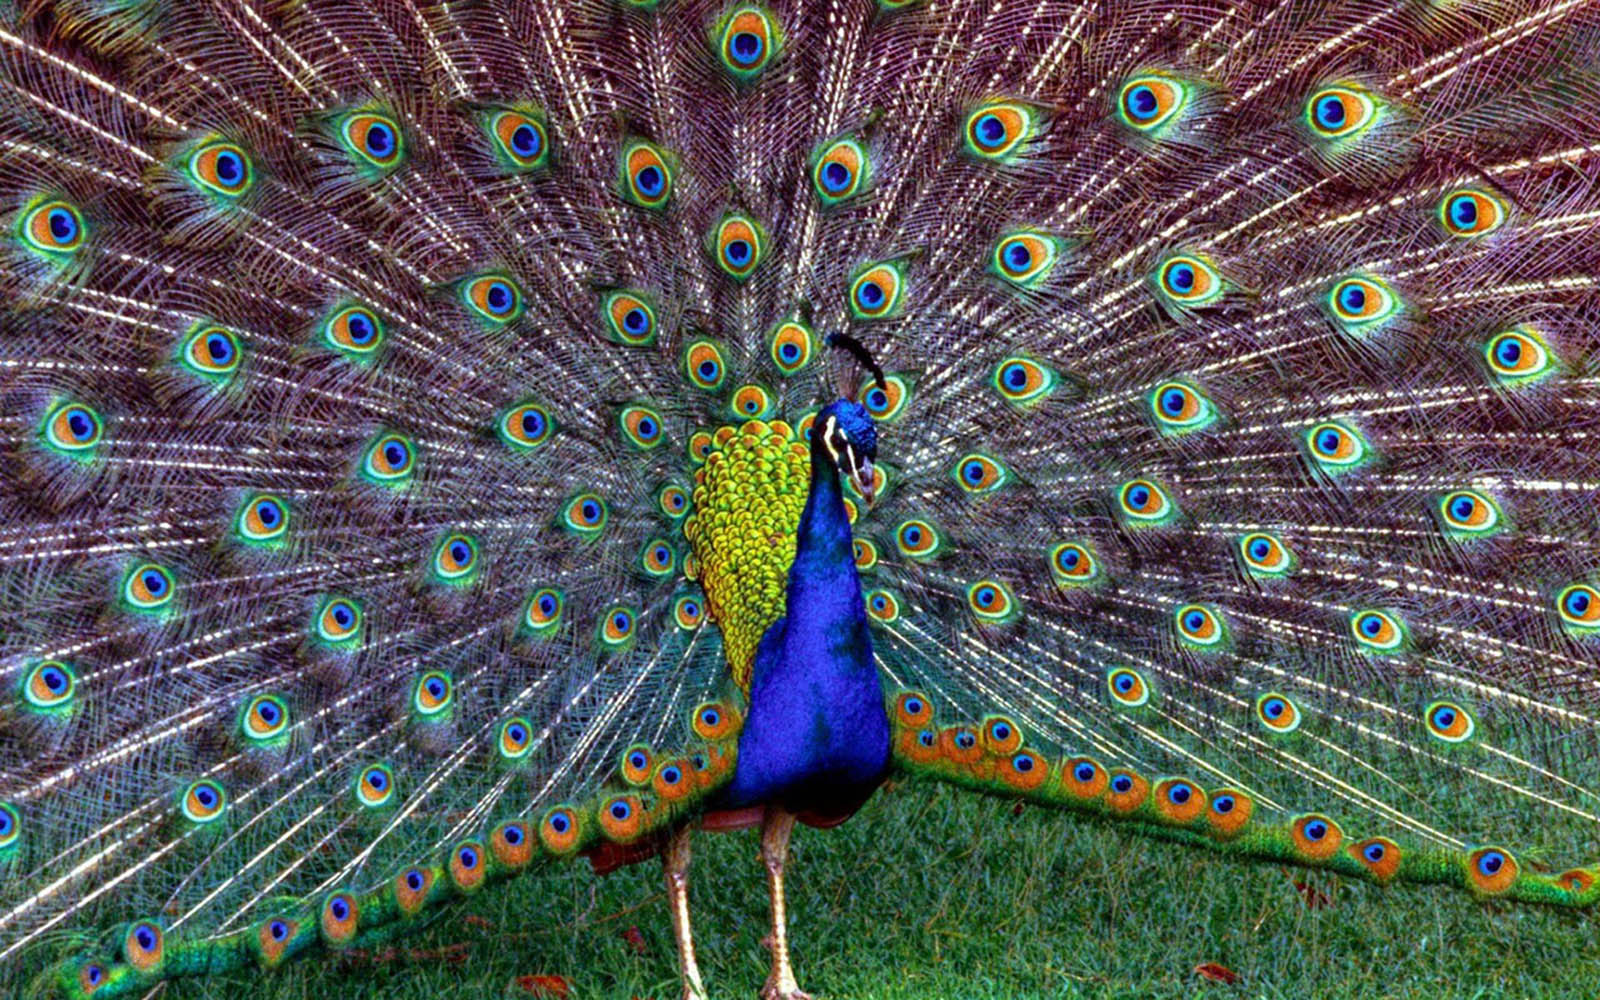 Wallpaper: Peacock Wallpapers